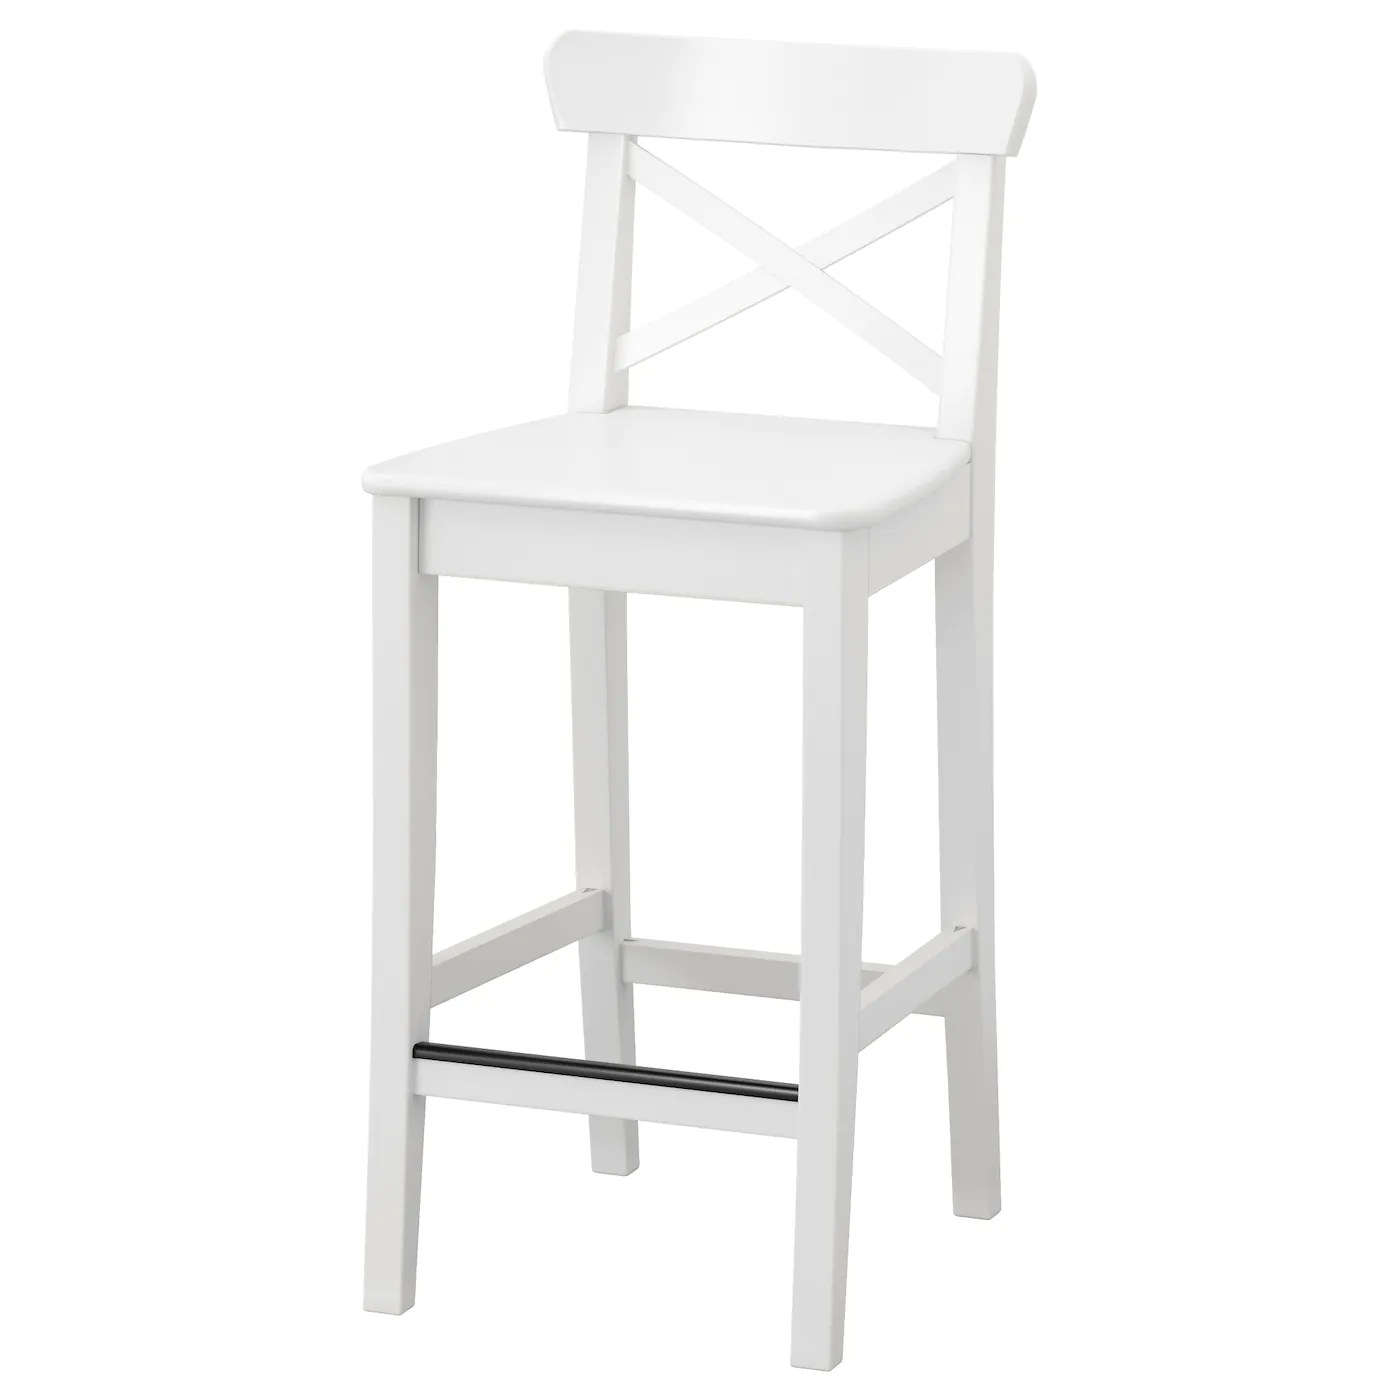 ikea bar chair used lift ingolf stool with backrest white 63 cm